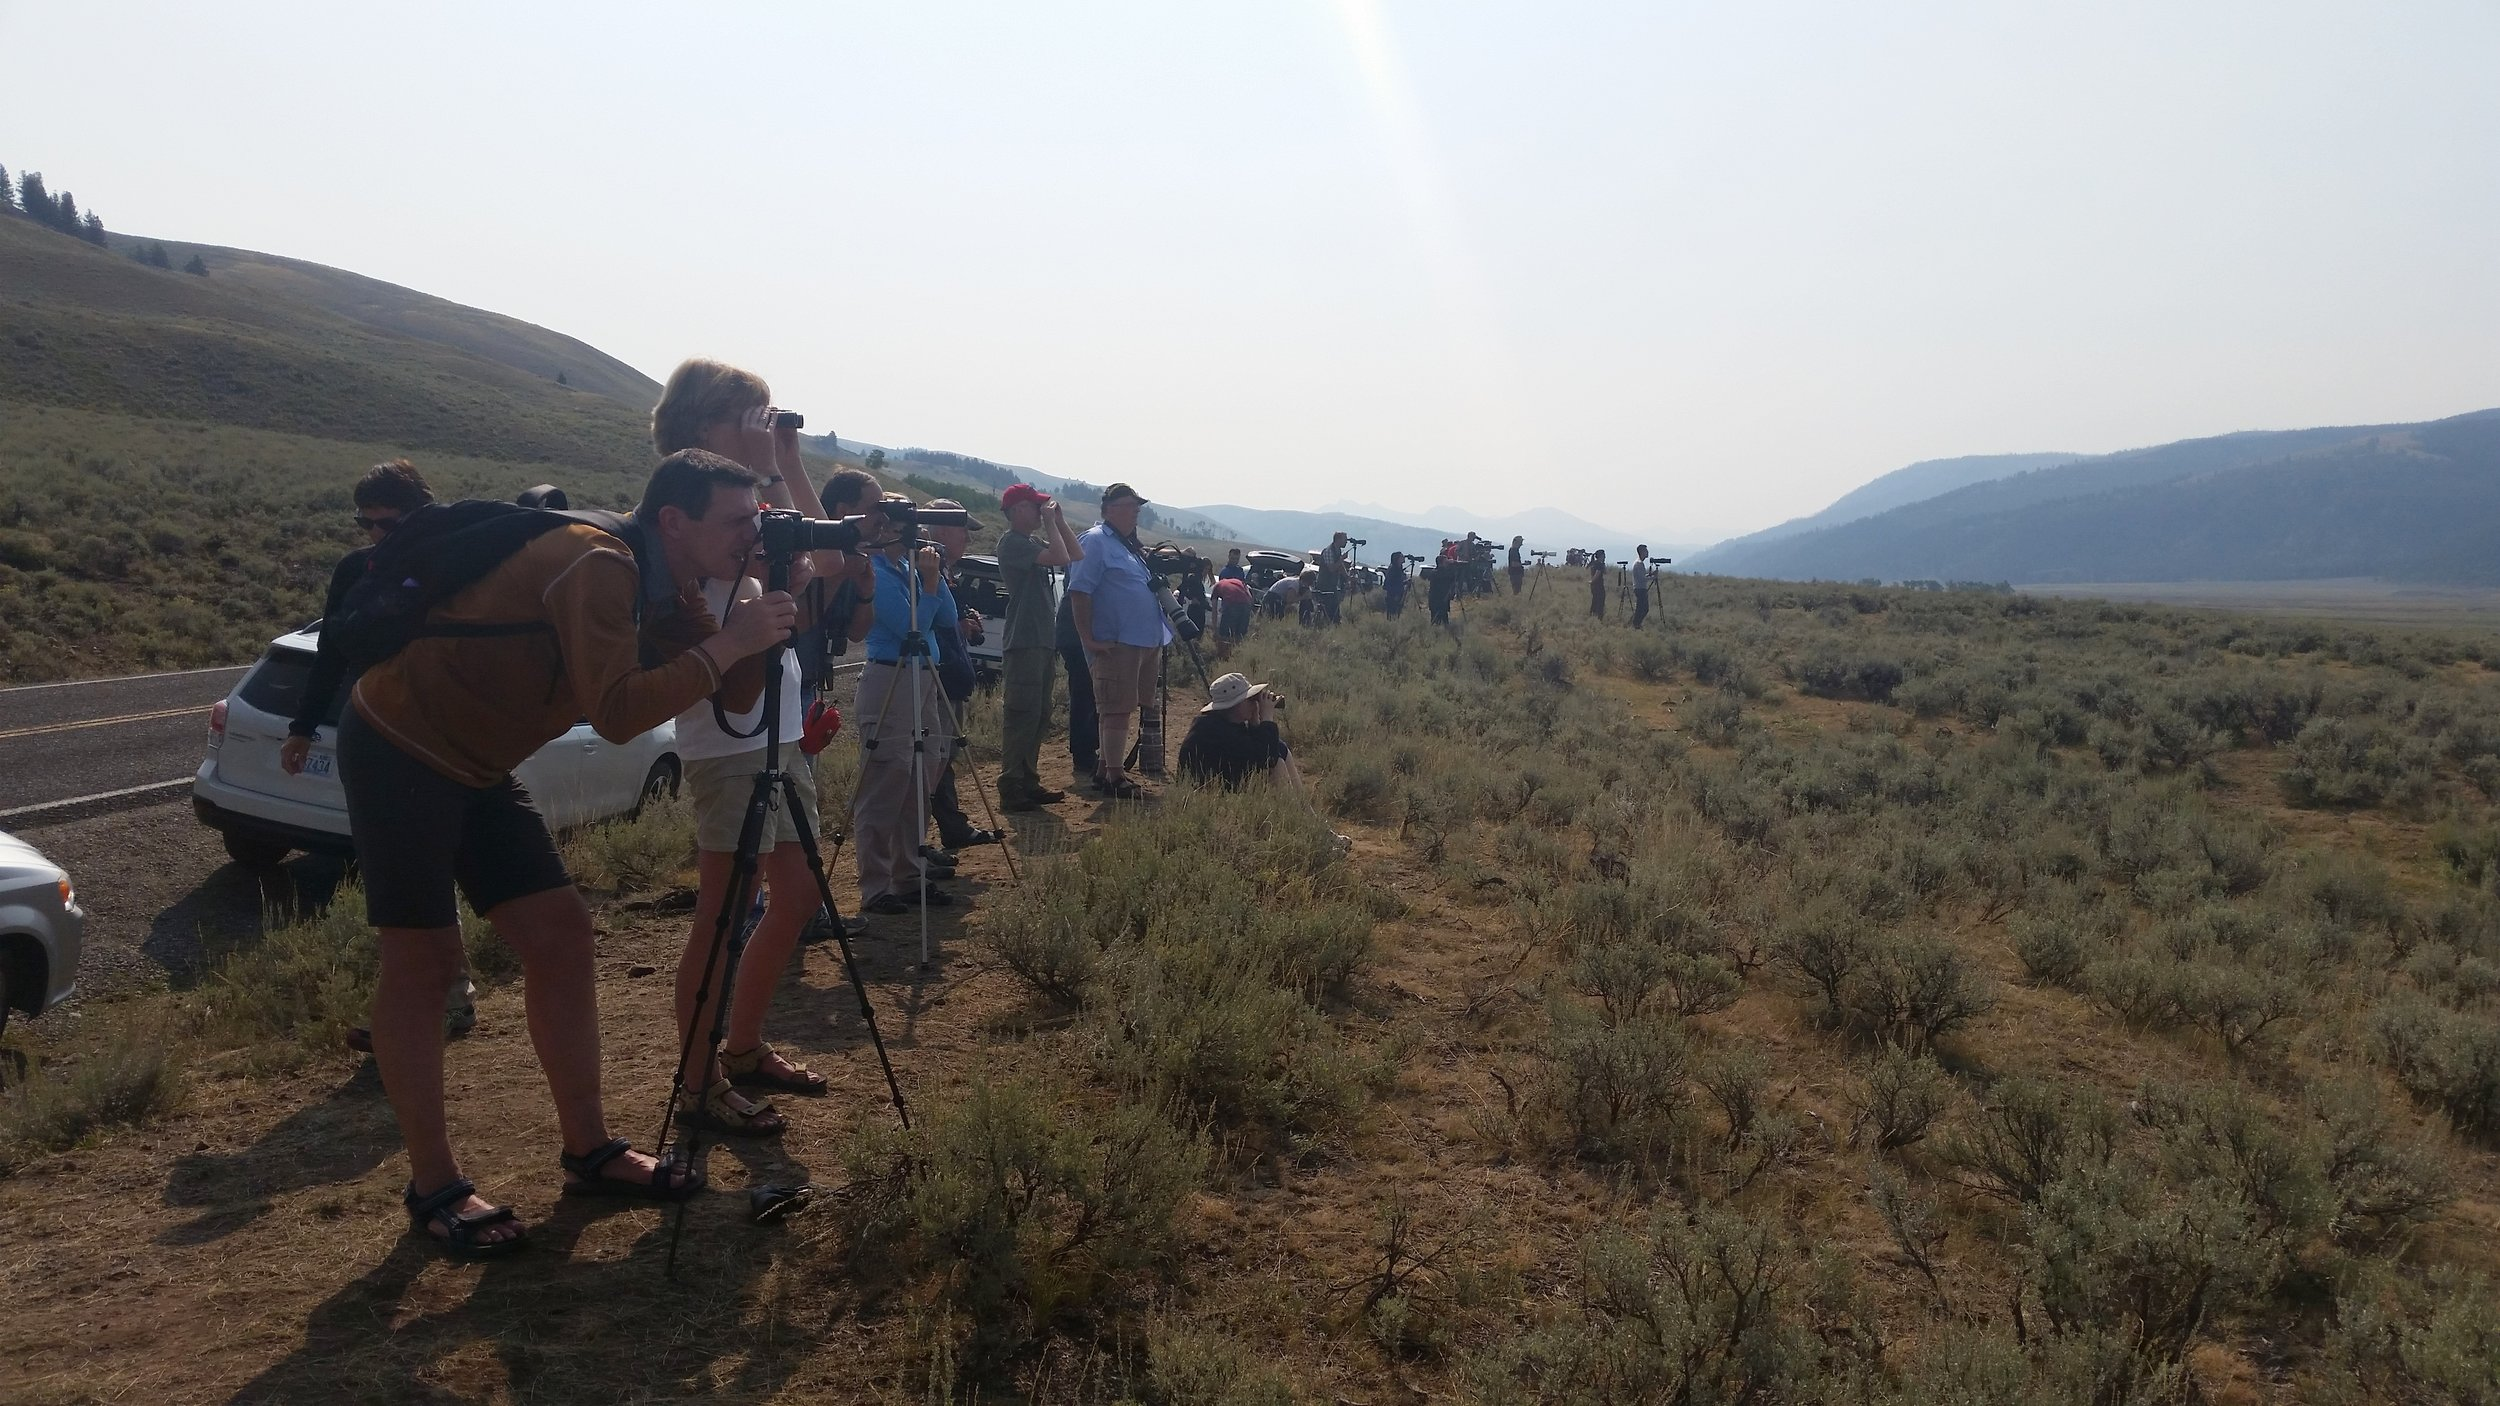 Some of these people in Yellowstone are taking photos, but most are just watching through scopes and binoculars. About a kilometer away, there's a grizzly bear and two wolves. Everyone here is acting responsibly, and enjoying their opportunity to see some amazing animals.